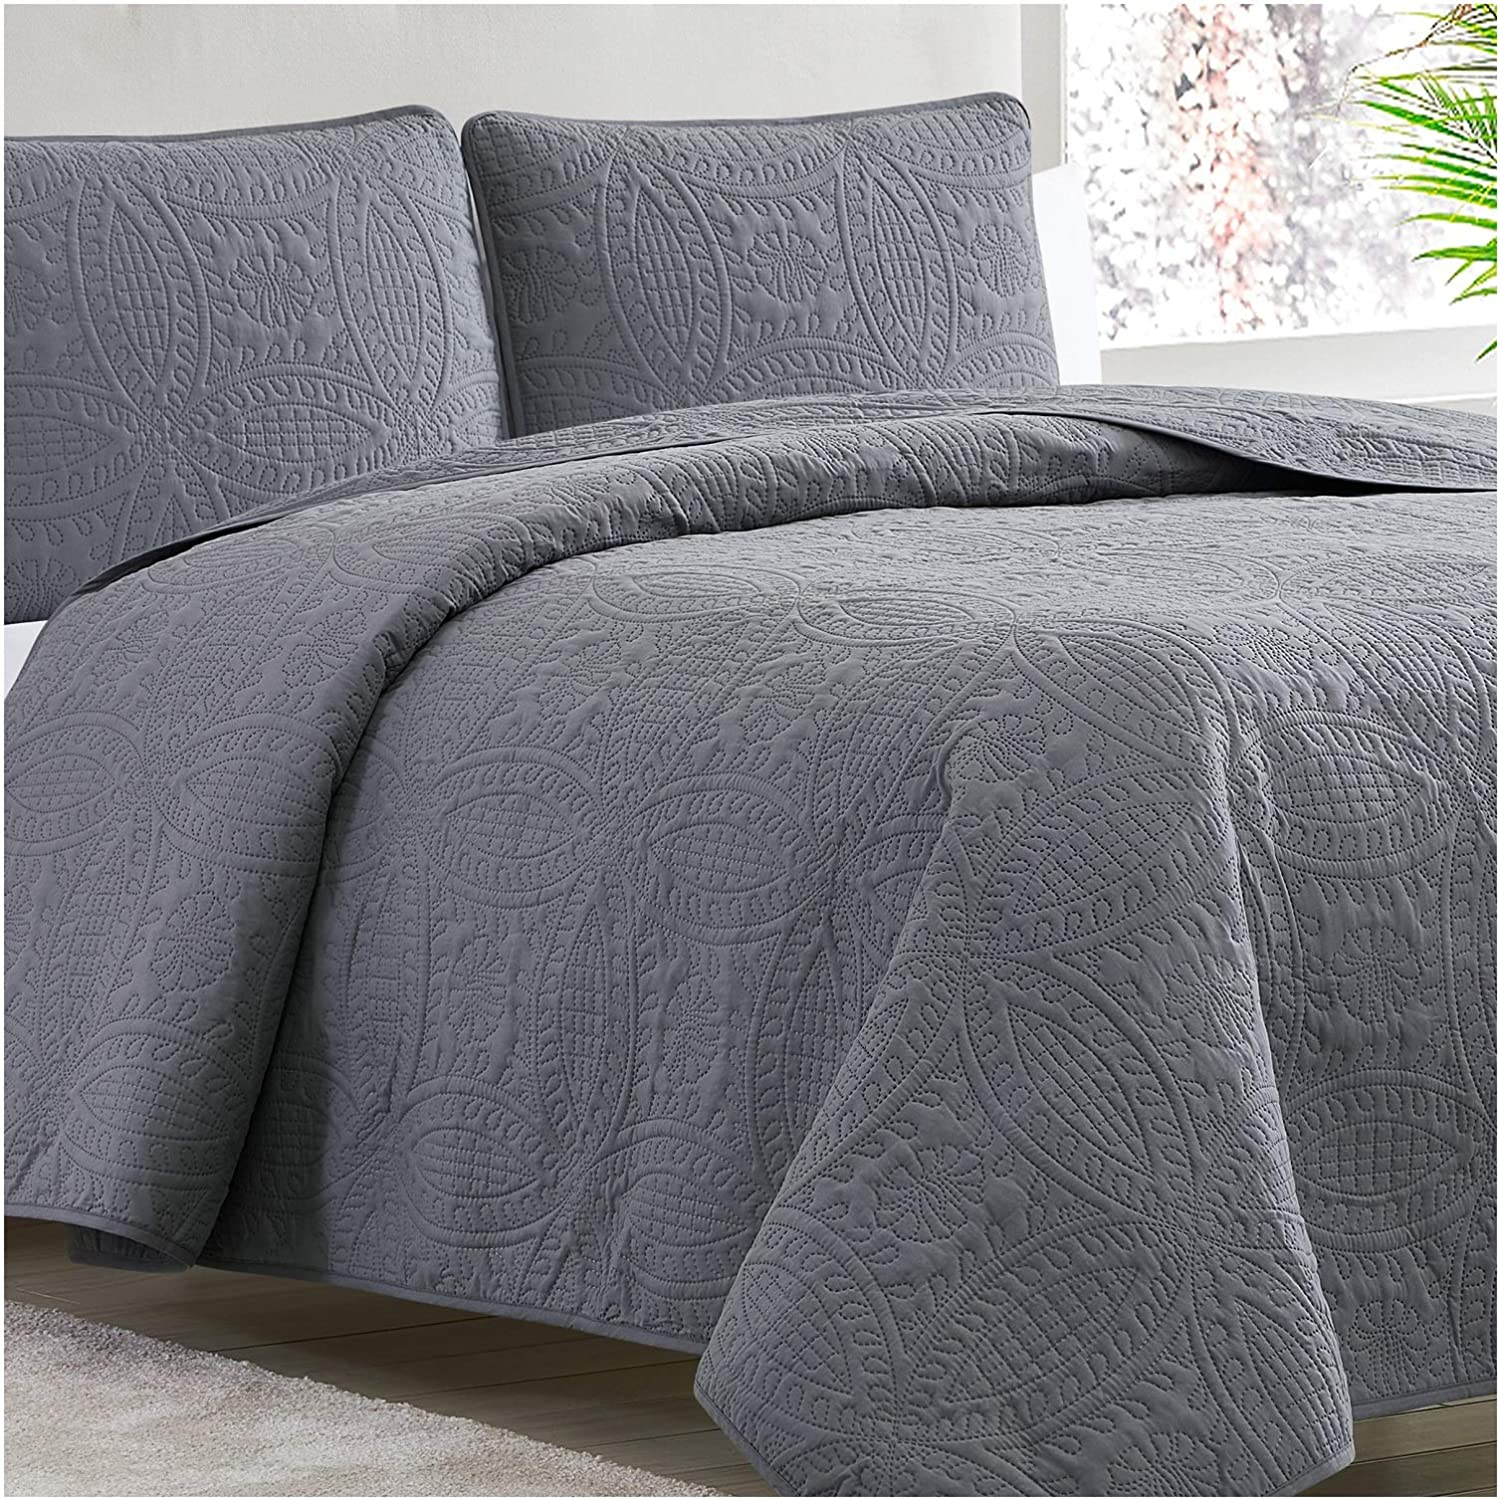 Mellanni Bedspread Coverlet Set Charcoal Bedding Cover SEAL limited product Overs - Fashionable